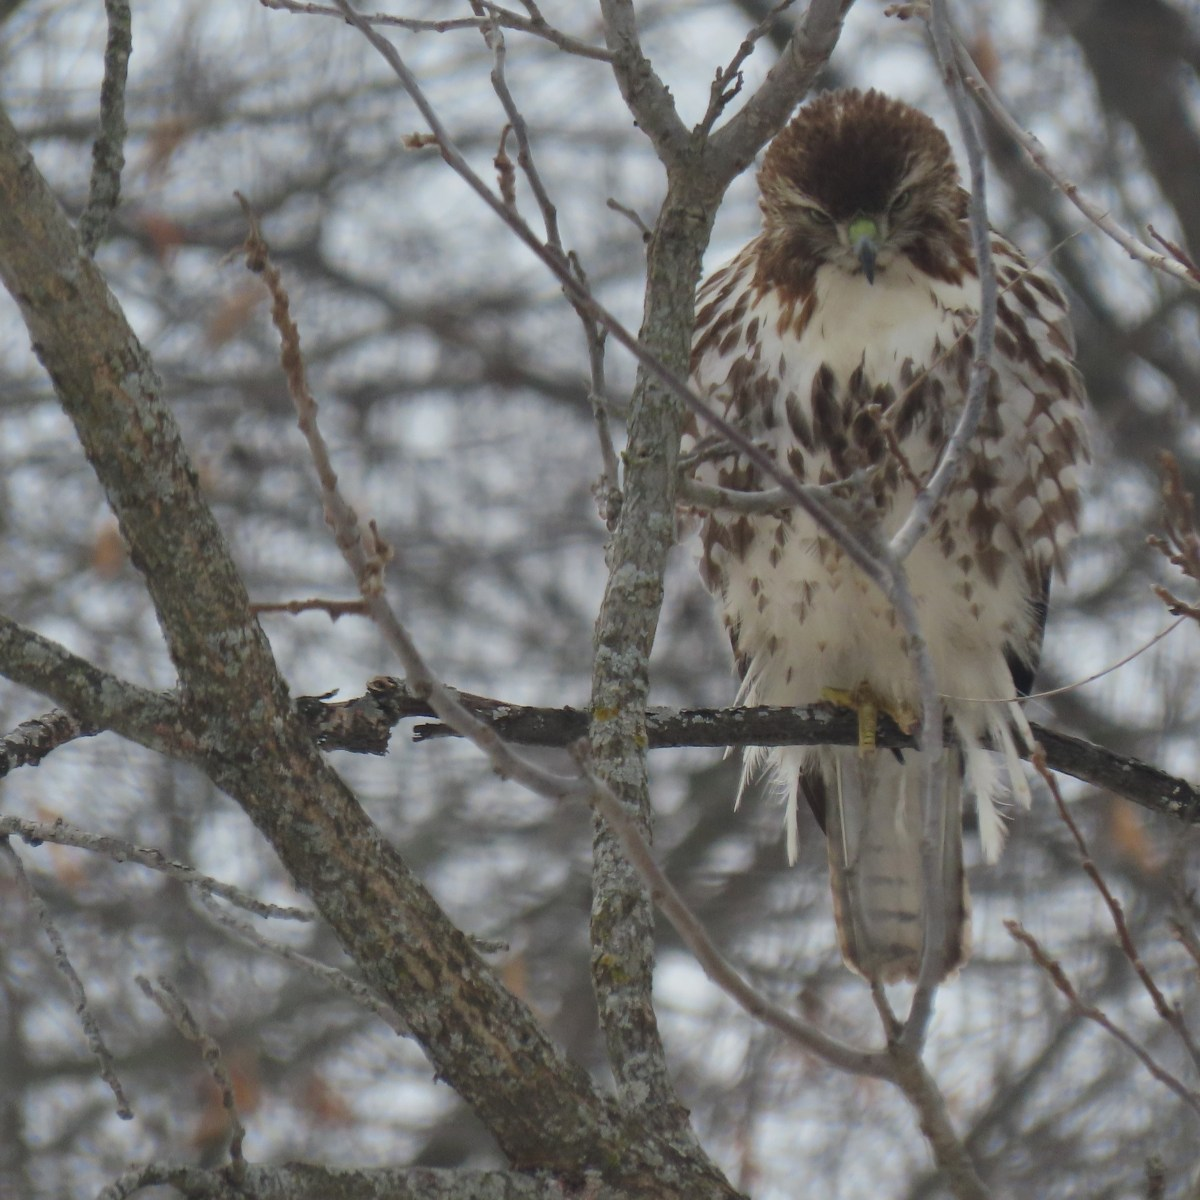 A Red-tailed Hawk looks down while perched on a branch in winter